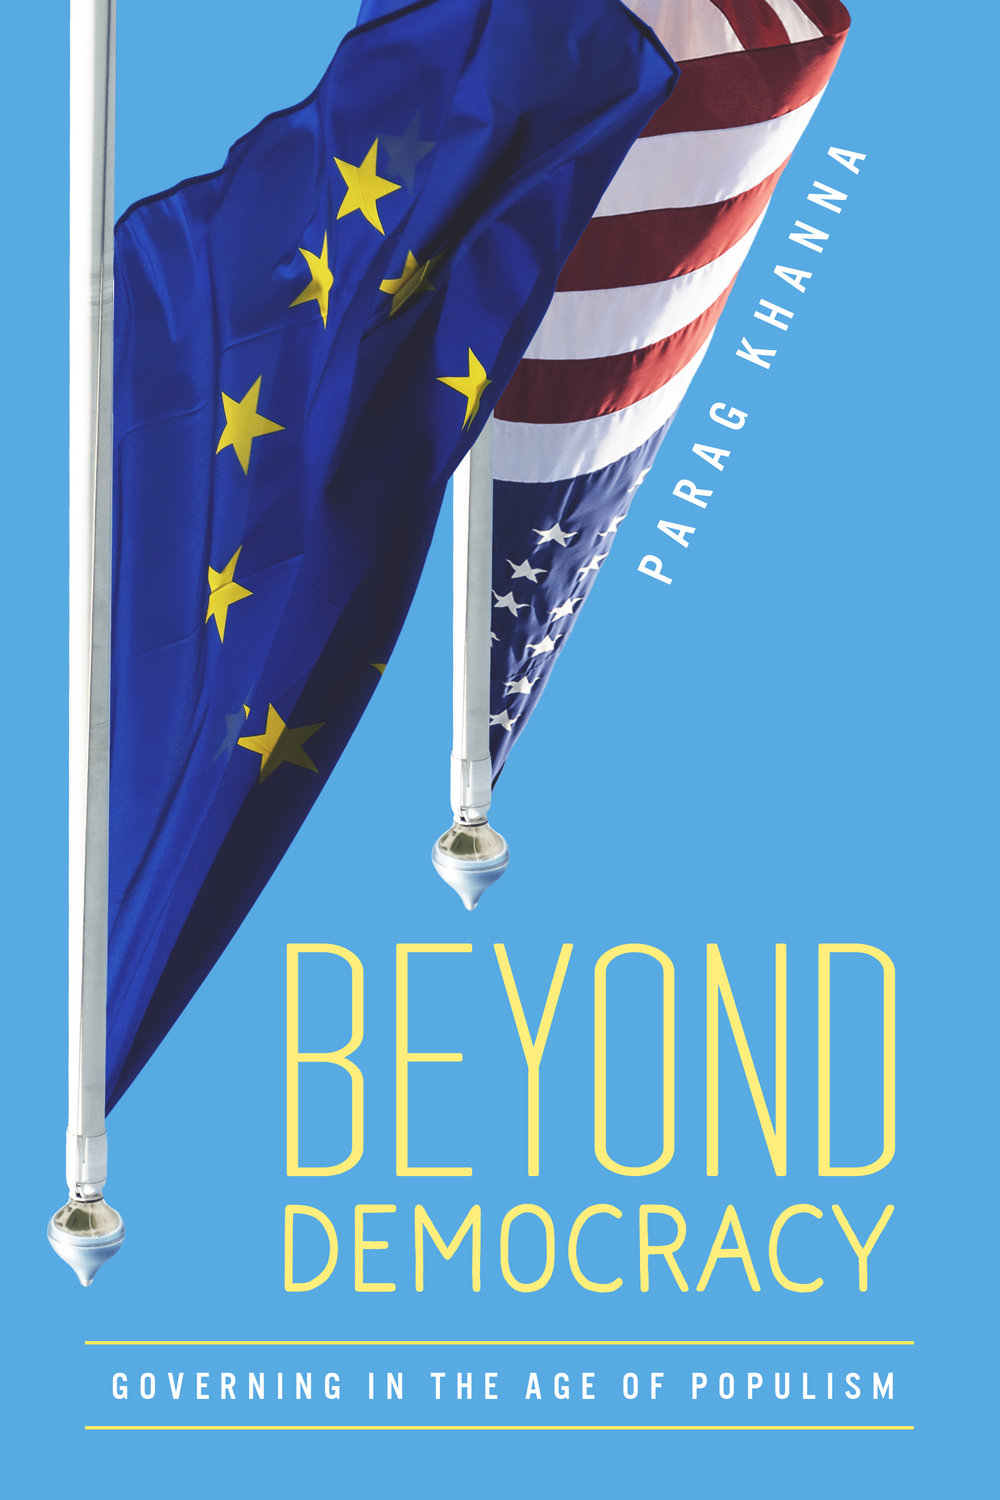 EU-Front-Cover-Finalized.jpg